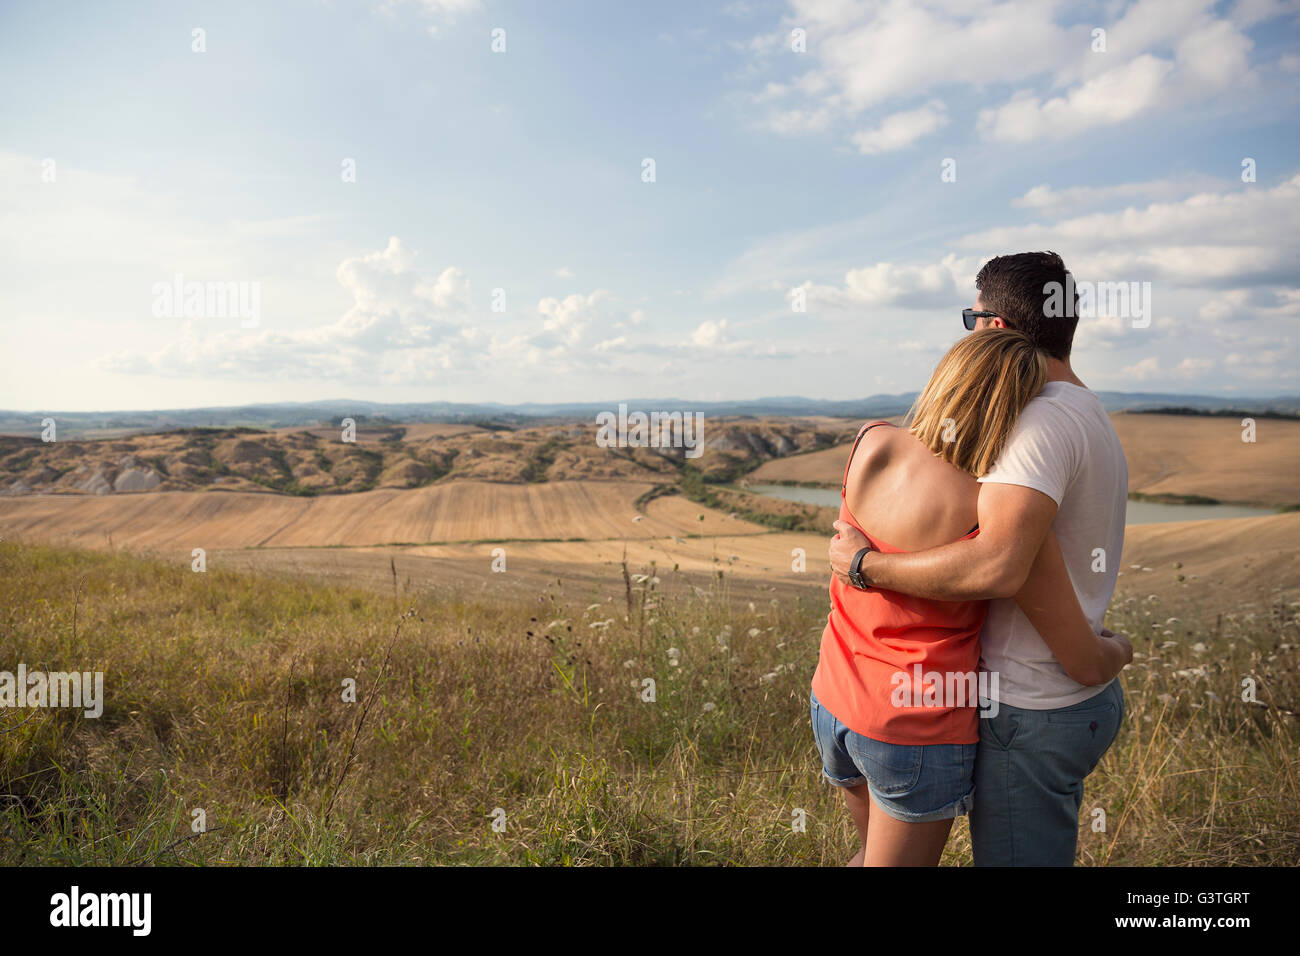 Italy, Tuscany, Hugging couple looking at field landscape - Stock Image